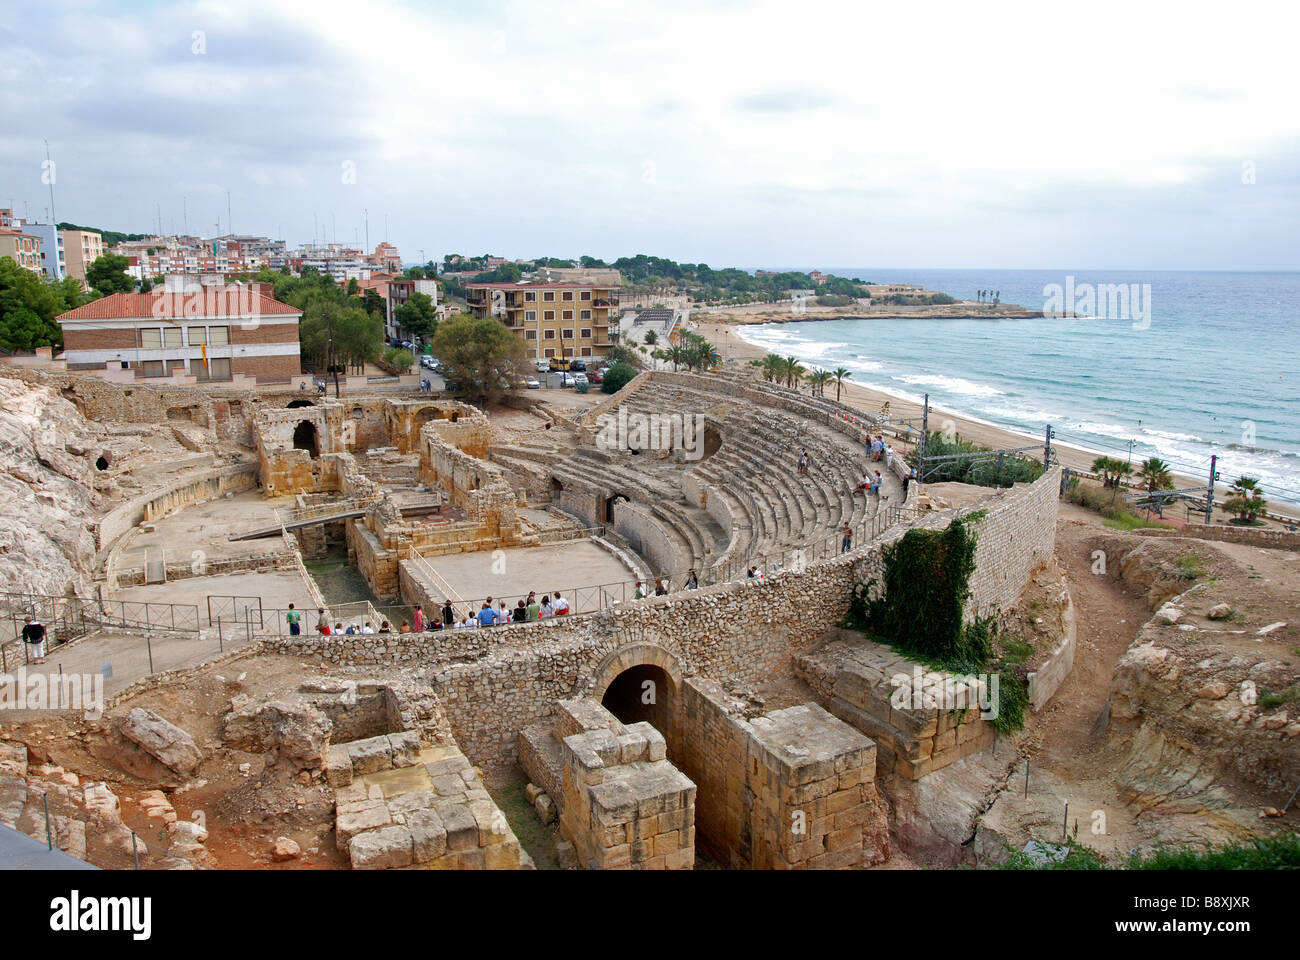 the ancient ruins of a roman amphitheatre at tarragona, catalonia,spain - Stock Image